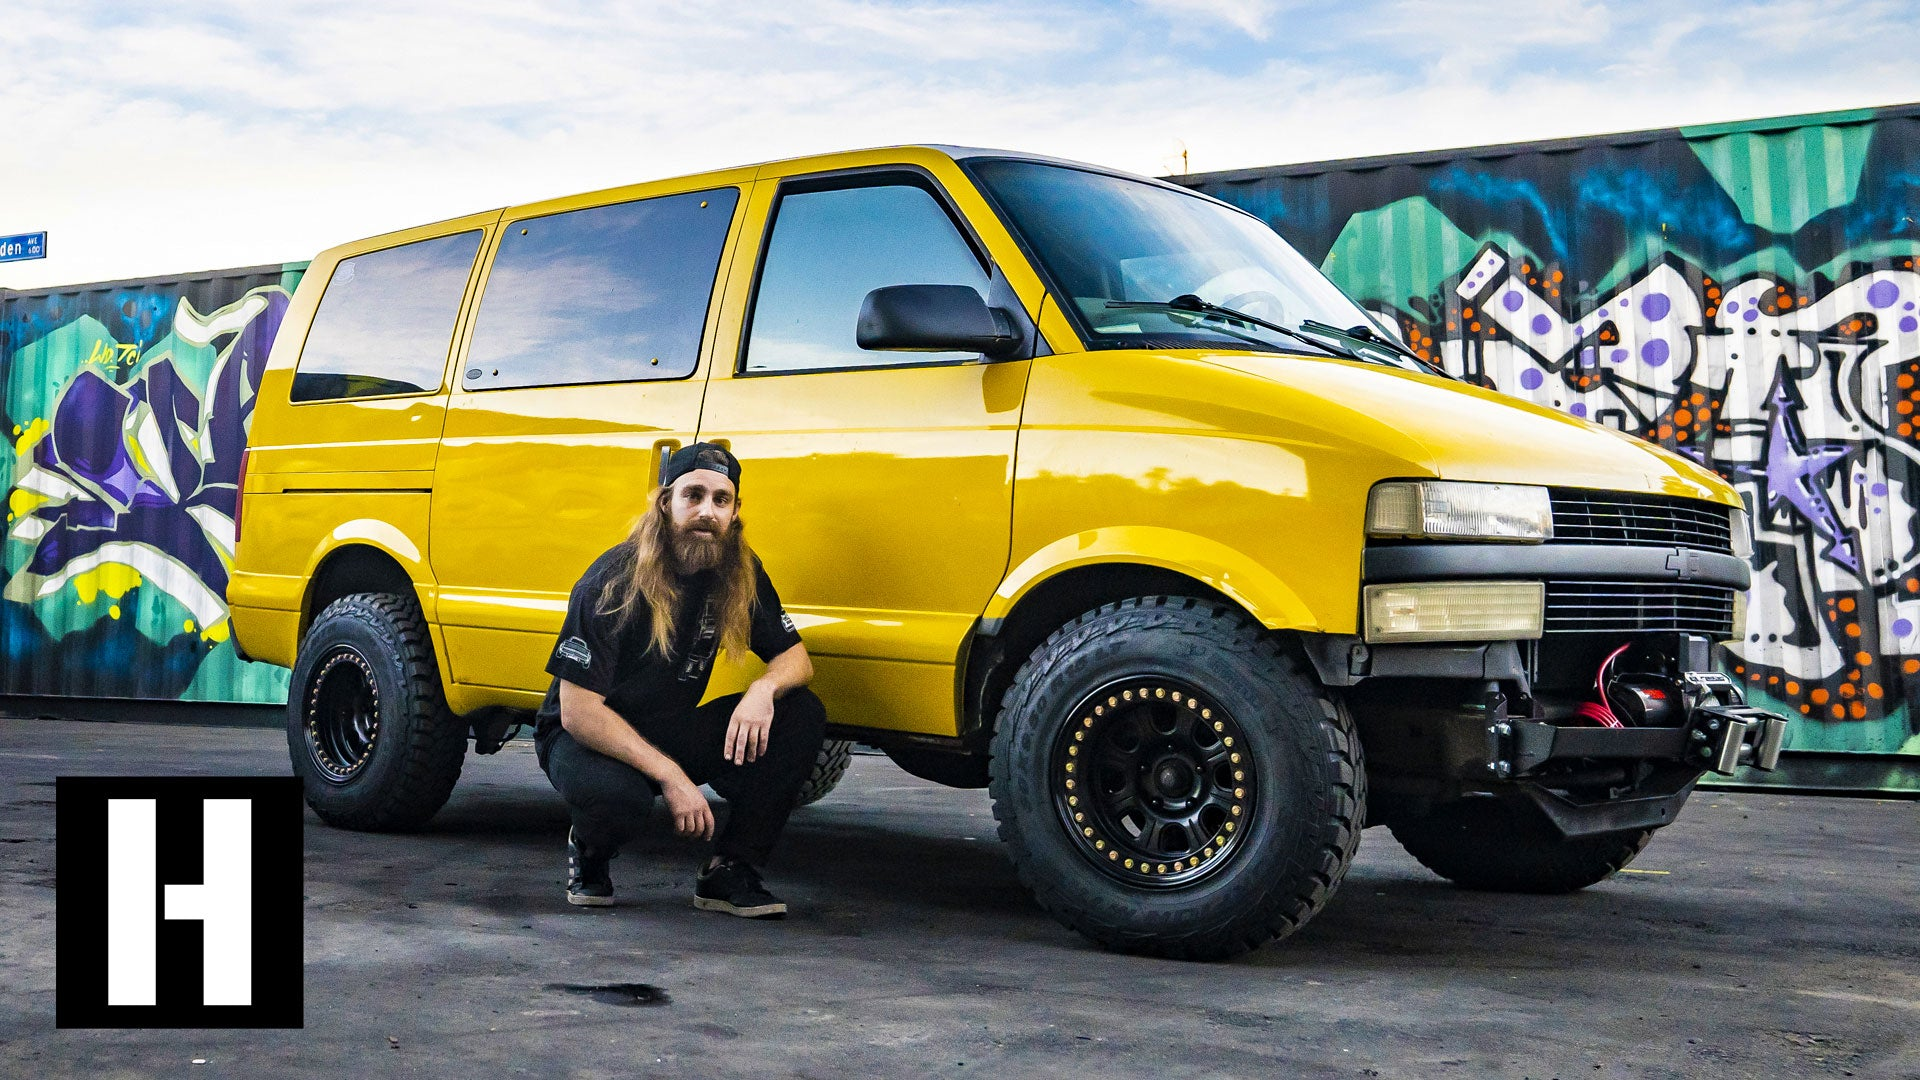 Astro Van to Badasstro Van: Our Shreditor Kyle's Daily Gets